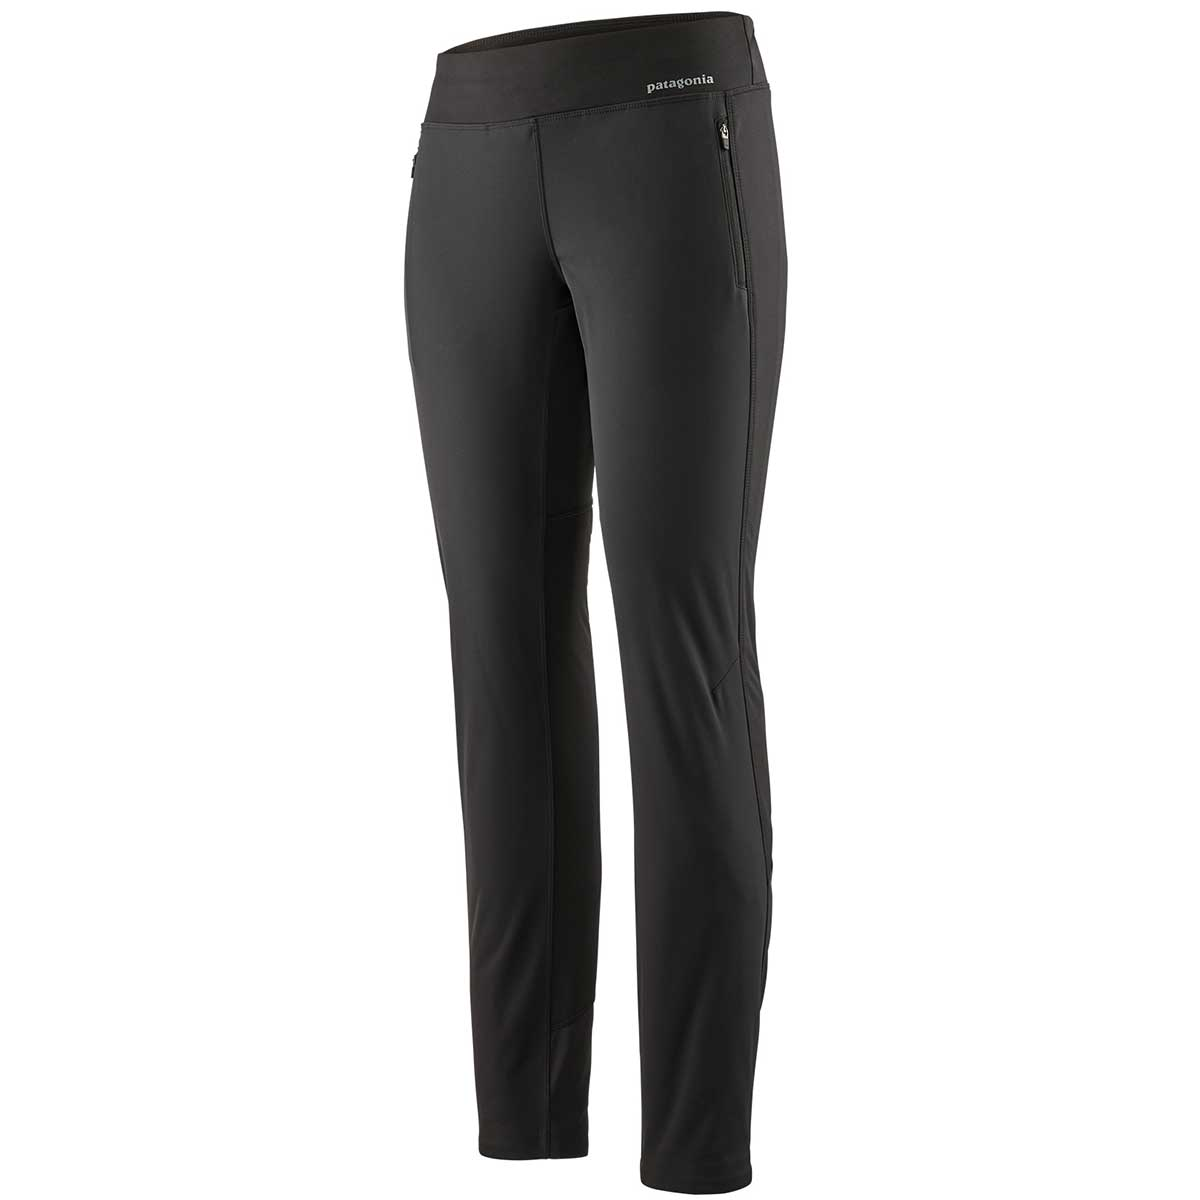 Patagonia women's Wind Shield Pant in Black front view